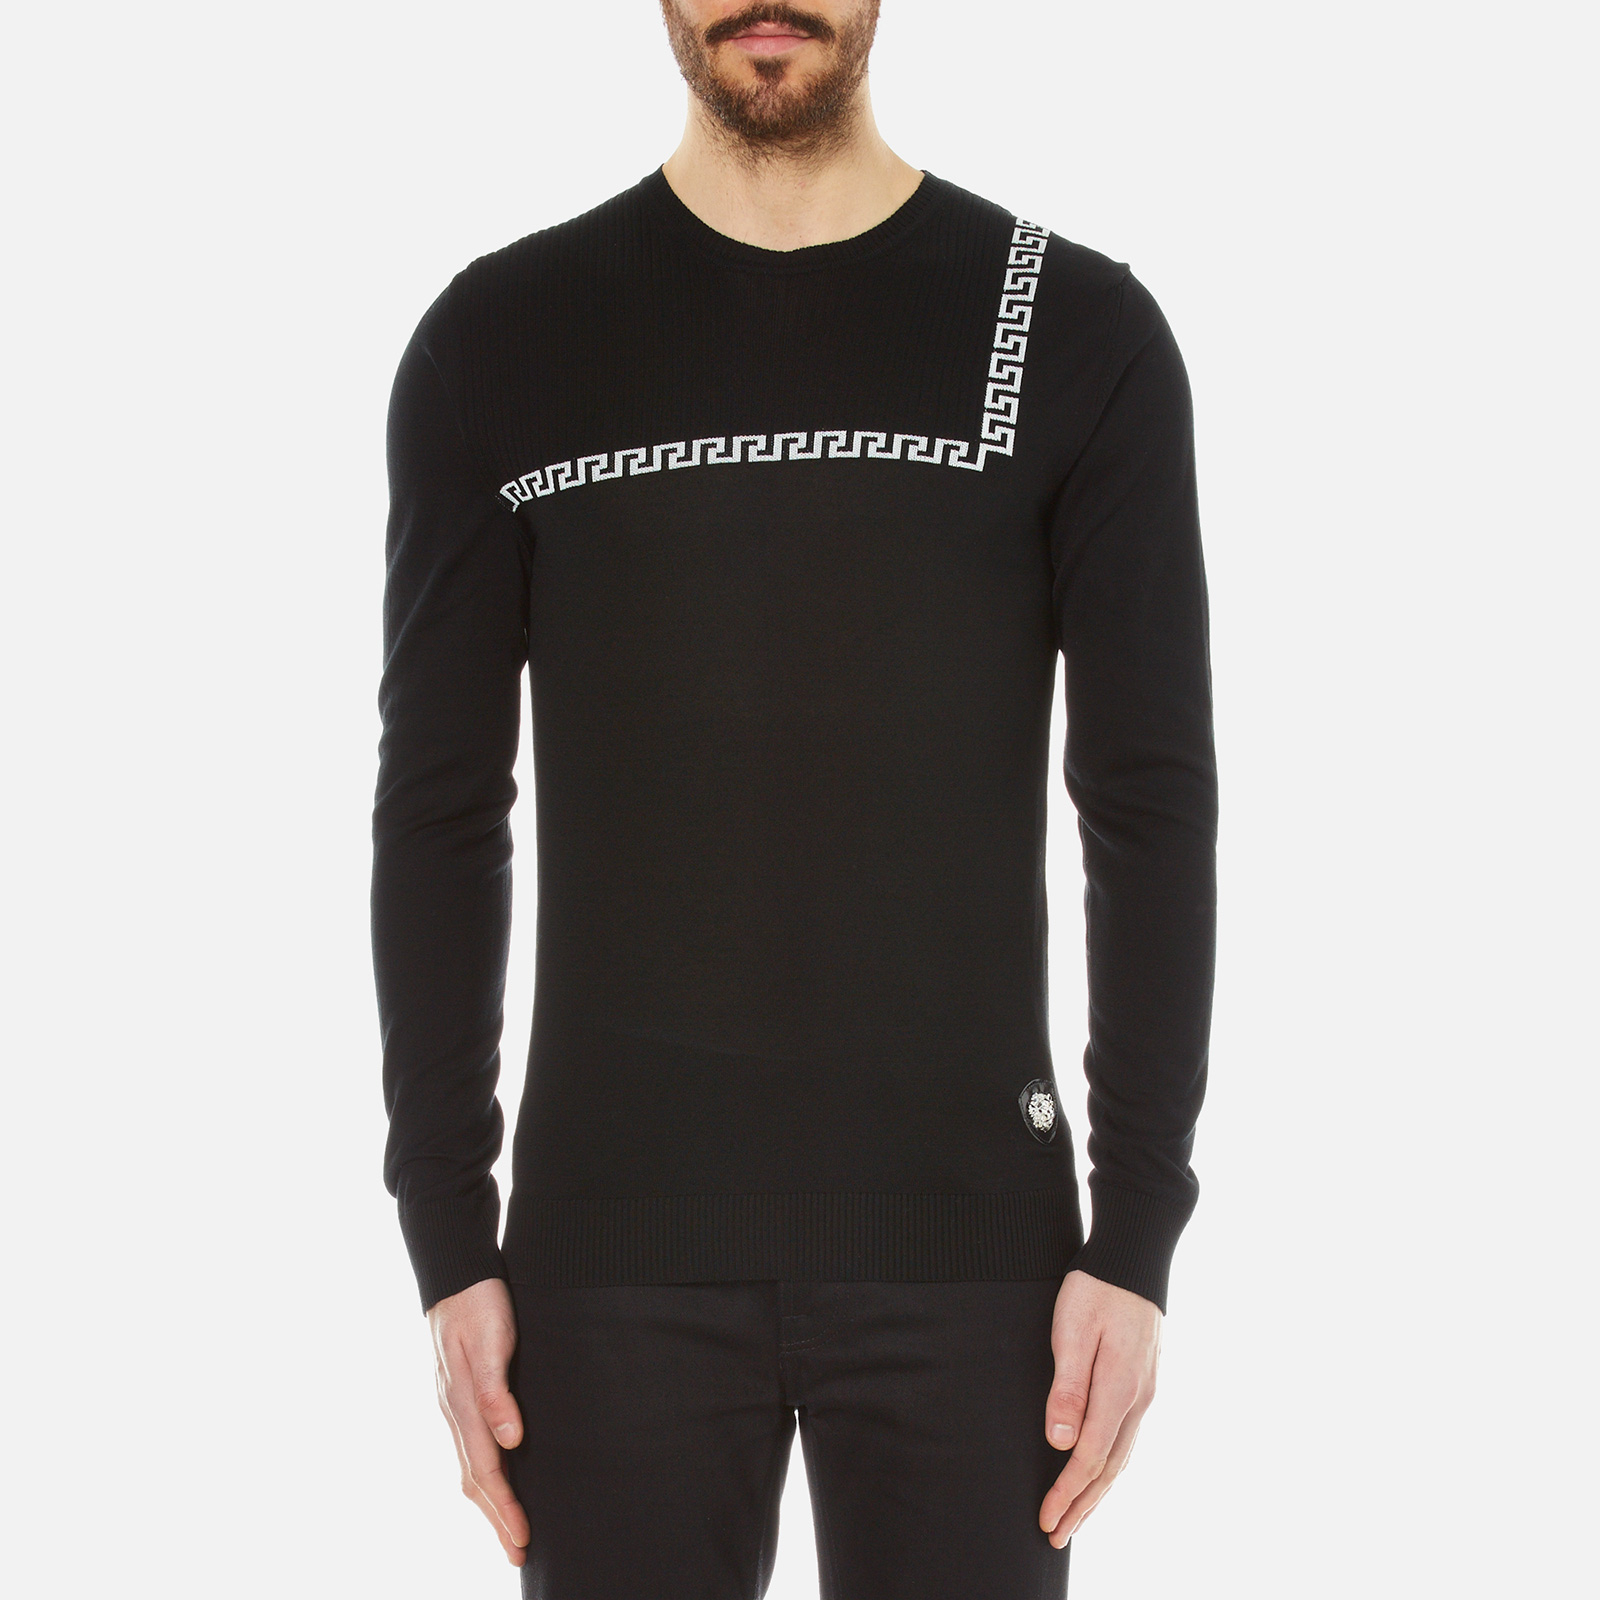 db8240b3a4c1ba Versus Versace Men's Crew Neck Jumper with Baroque Print Detail - Black -  Free UK Delivery over £50